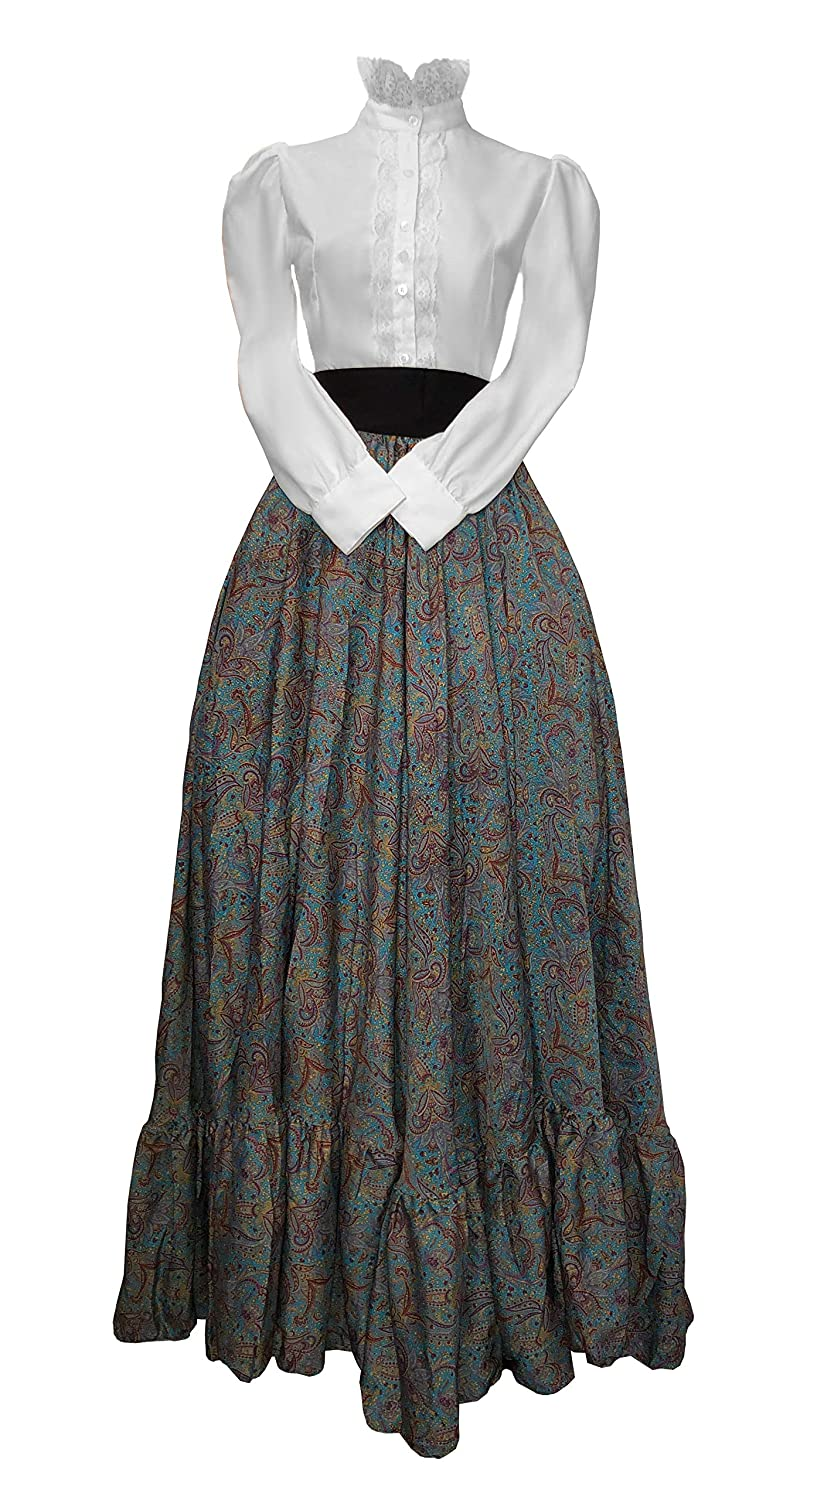 Victorian Dresses | Victorian Ballgowns | Victorian Clothing Civil War Era Victorian 3 pc Costume $69.99 AT vintagedancer.com